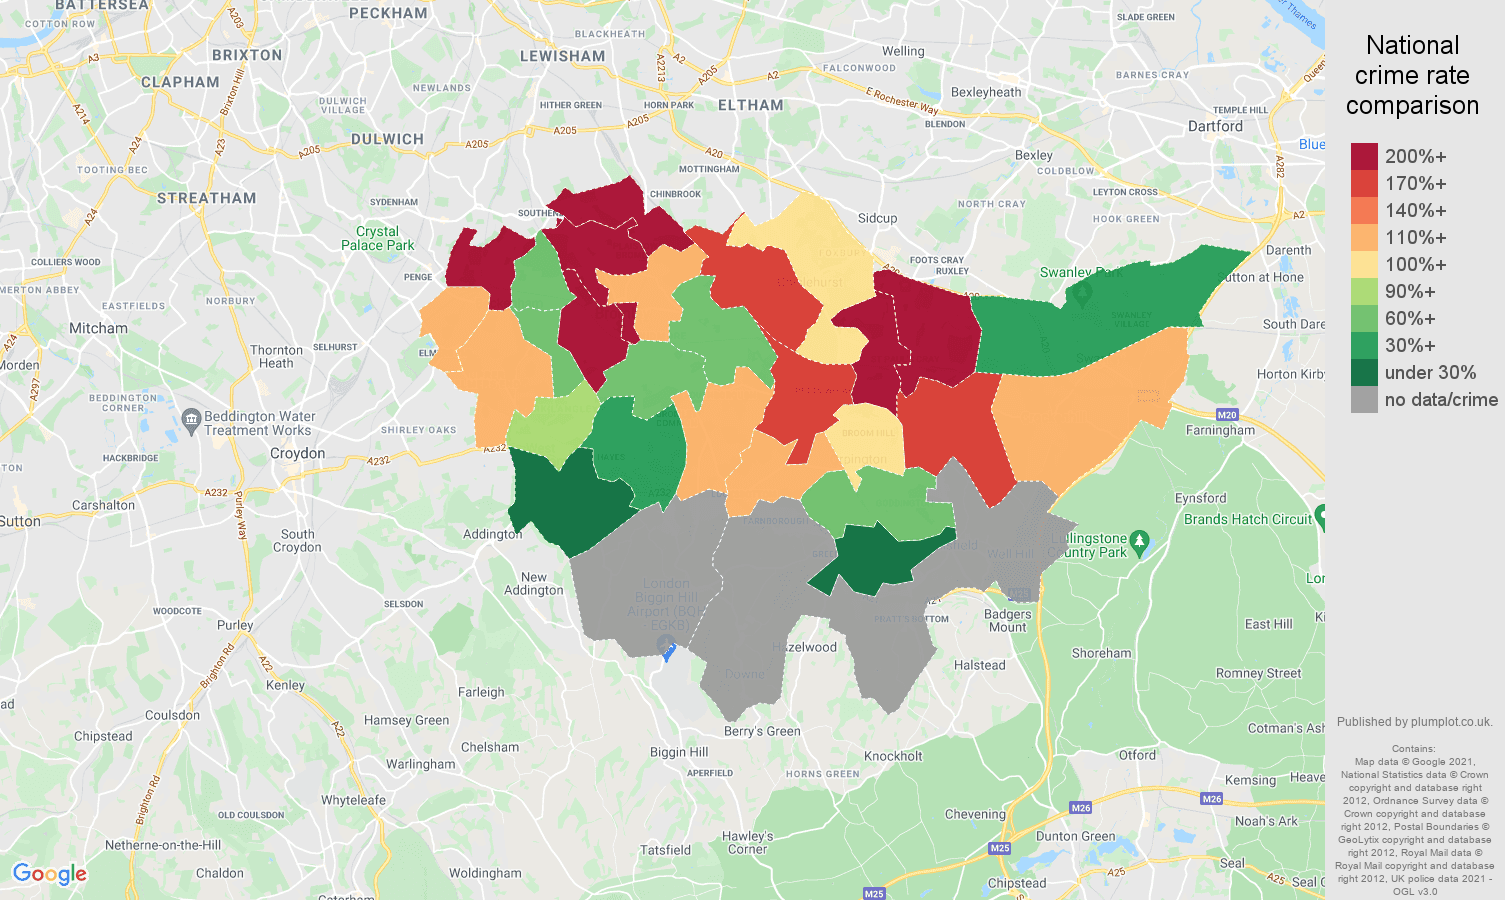 Bromley robbery crime rate comparison map